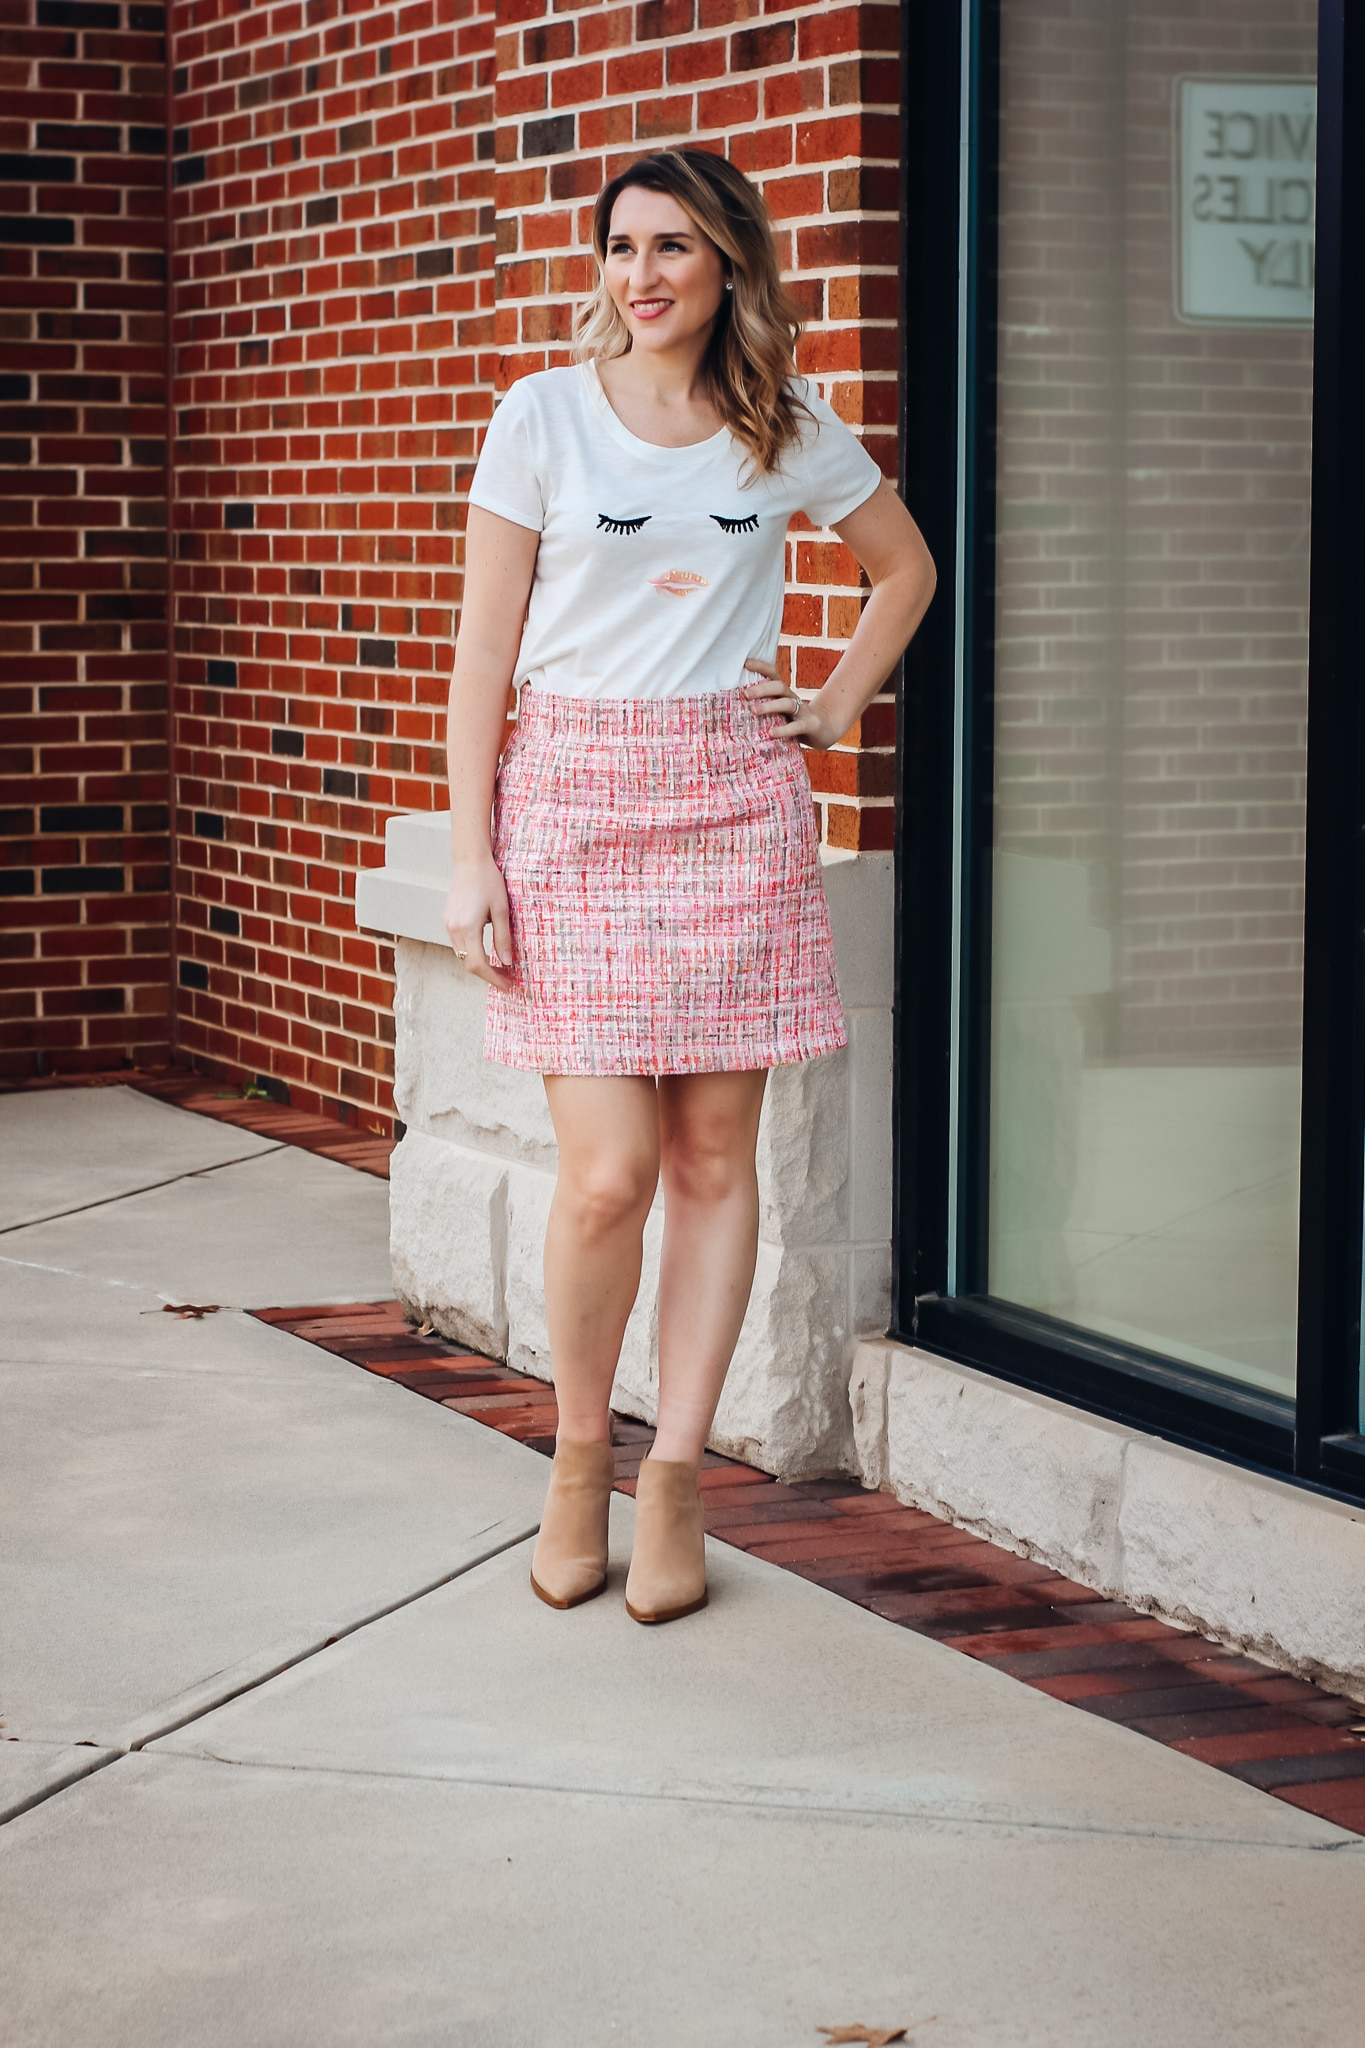 Classic Pink Tweed Skirt styled with eyes and lips graphic tee and tan booties